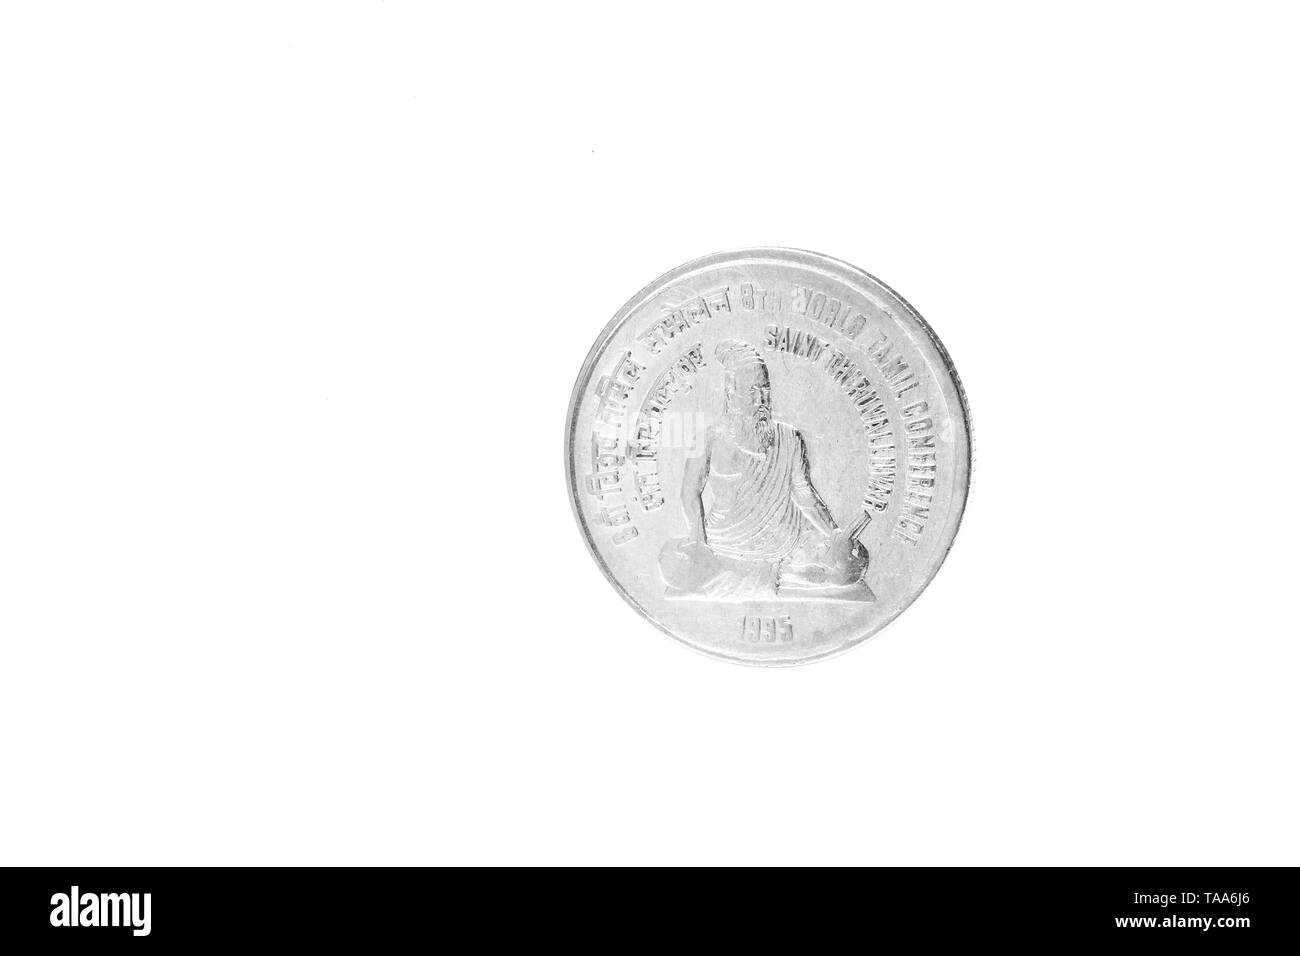 one rupee coin on white background, India, Asia, 1995 - Stock Image